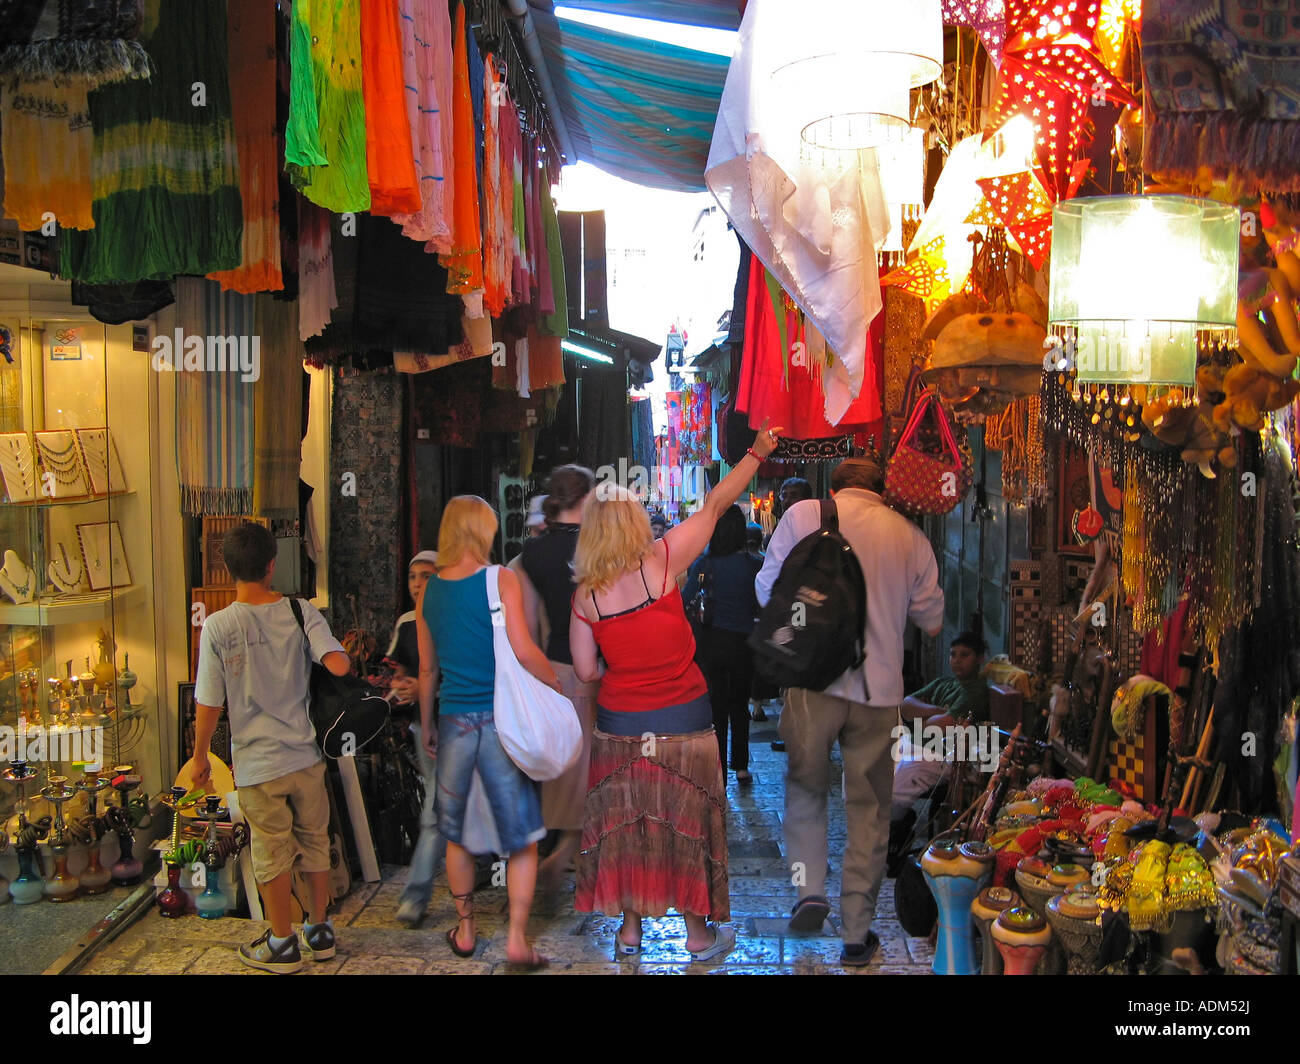 shoppers in the bazaar of the old city of Jerusalem, Israel, on the way to the Western Wall (the Wailing Wall) - Stock Image